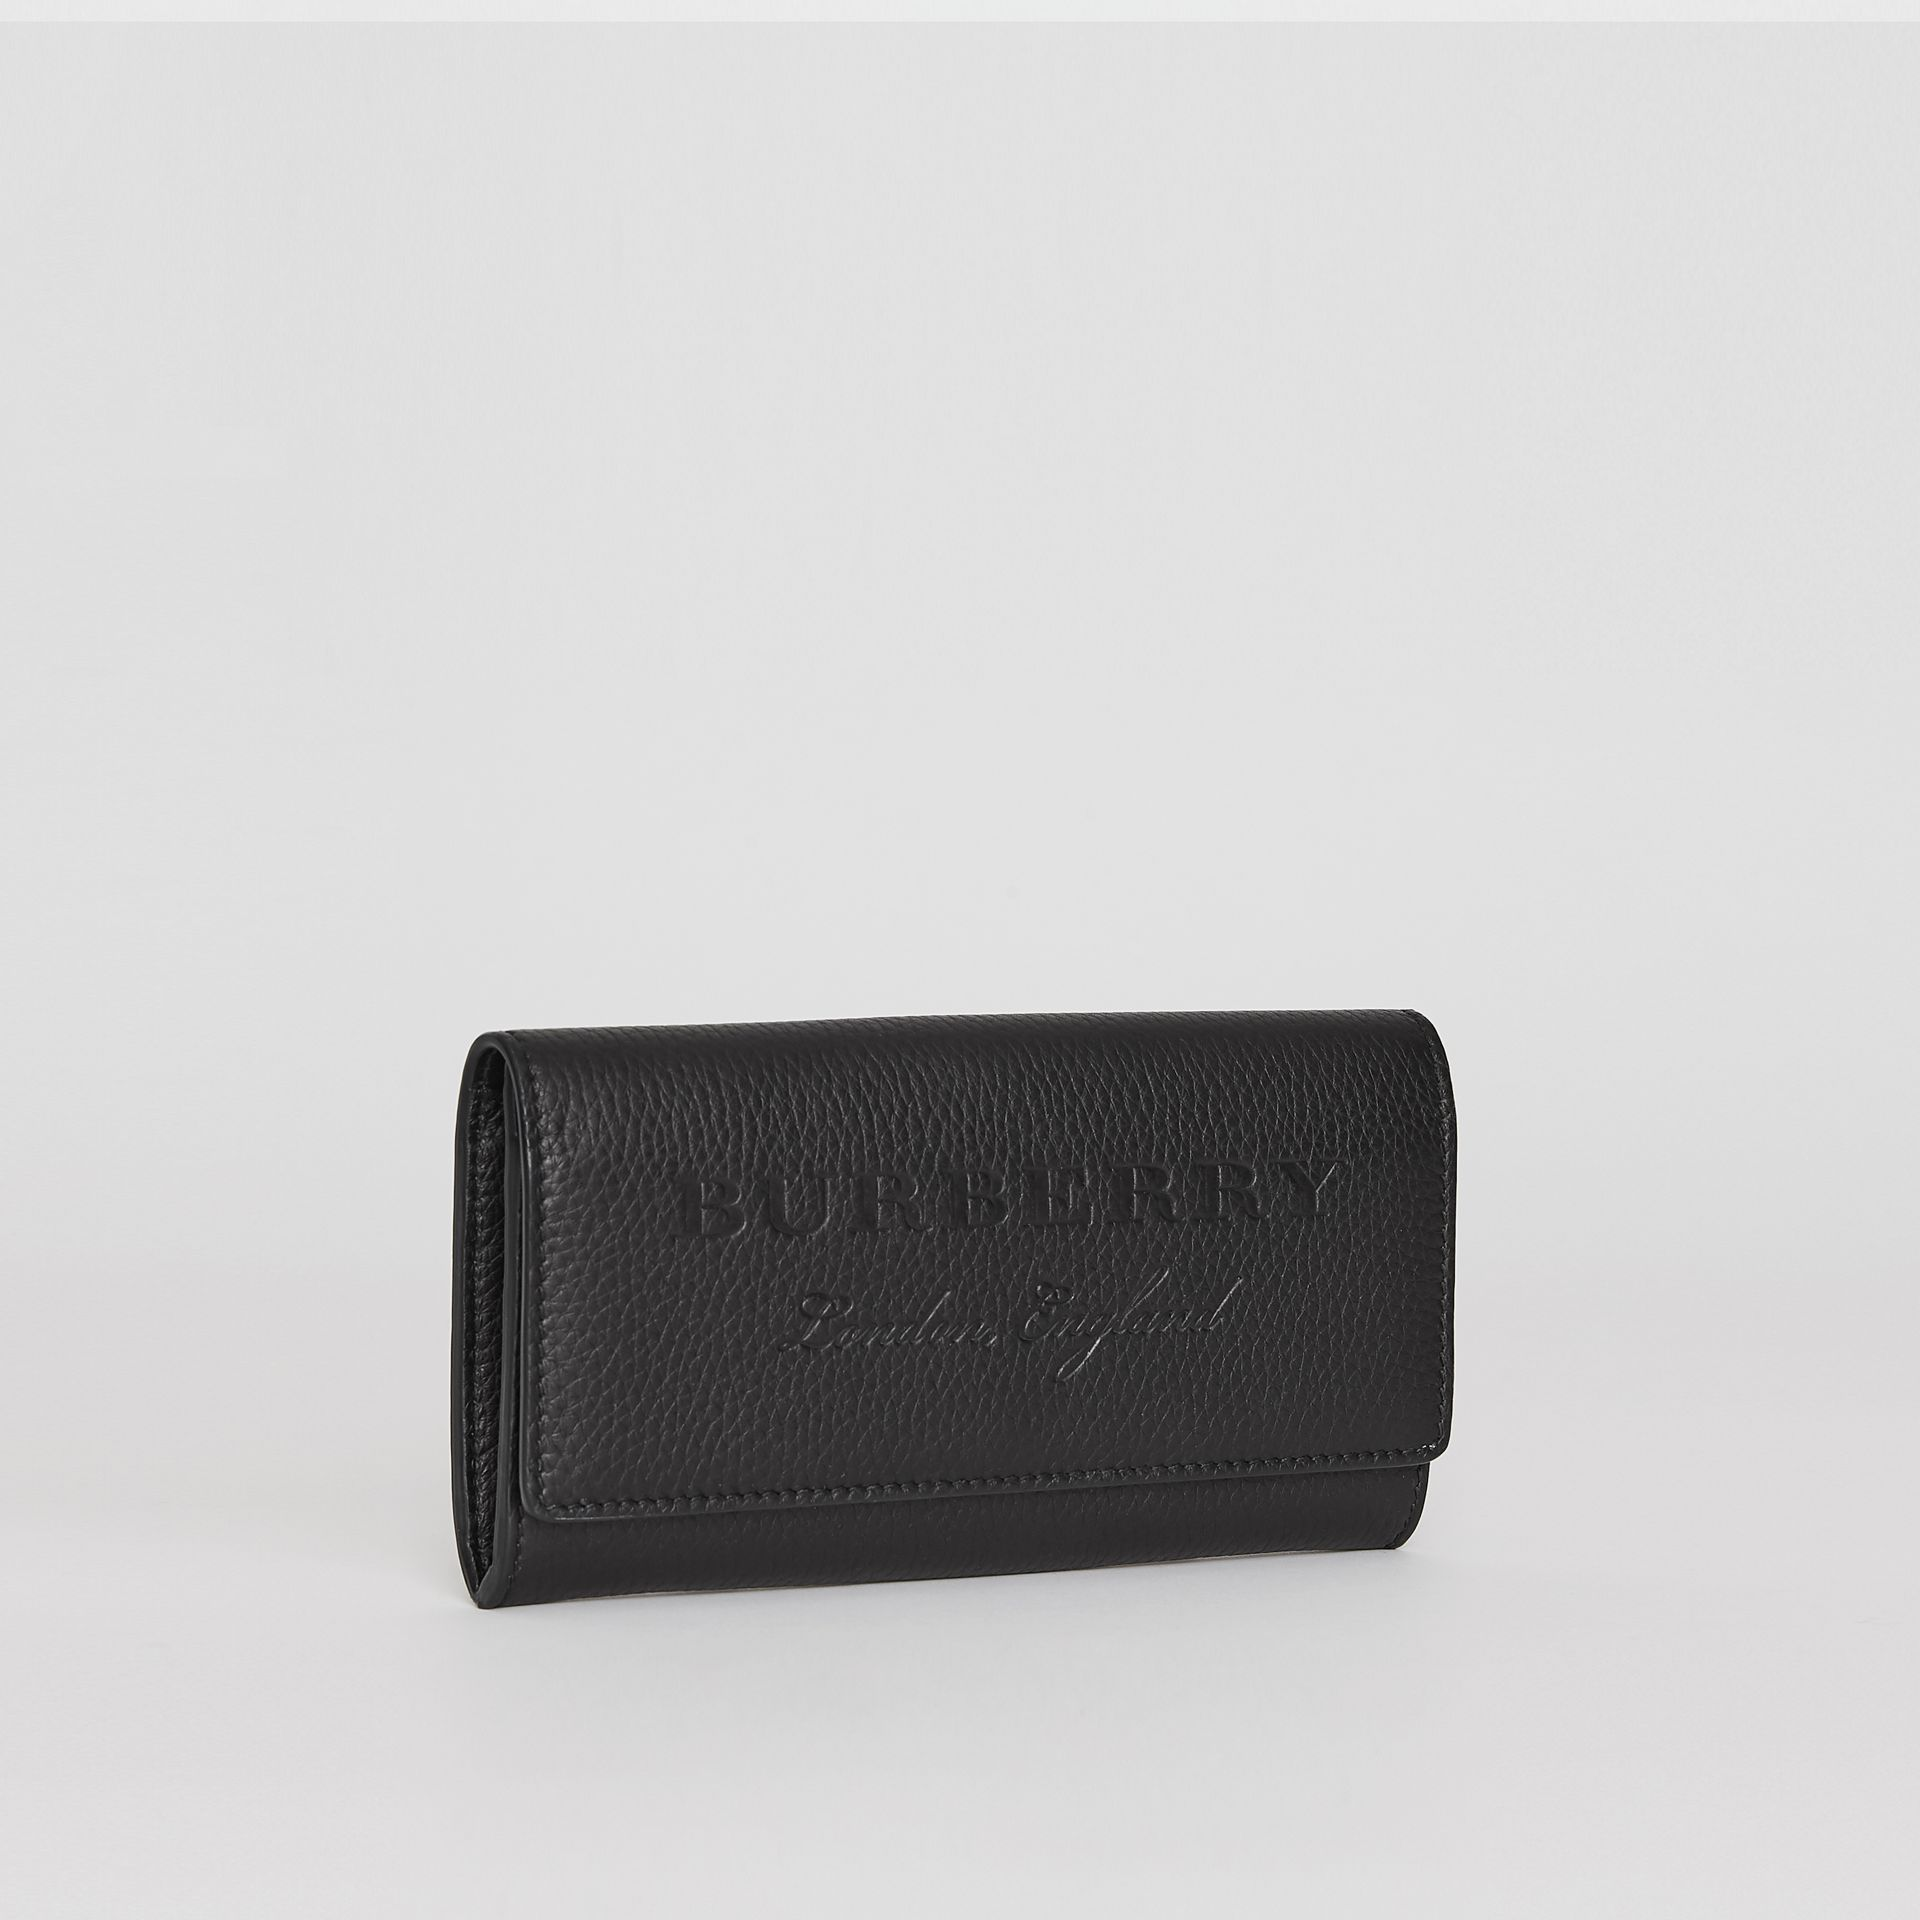 Embossed Leather Continental Wallet in Black - Women | Burberry - gallery image 4